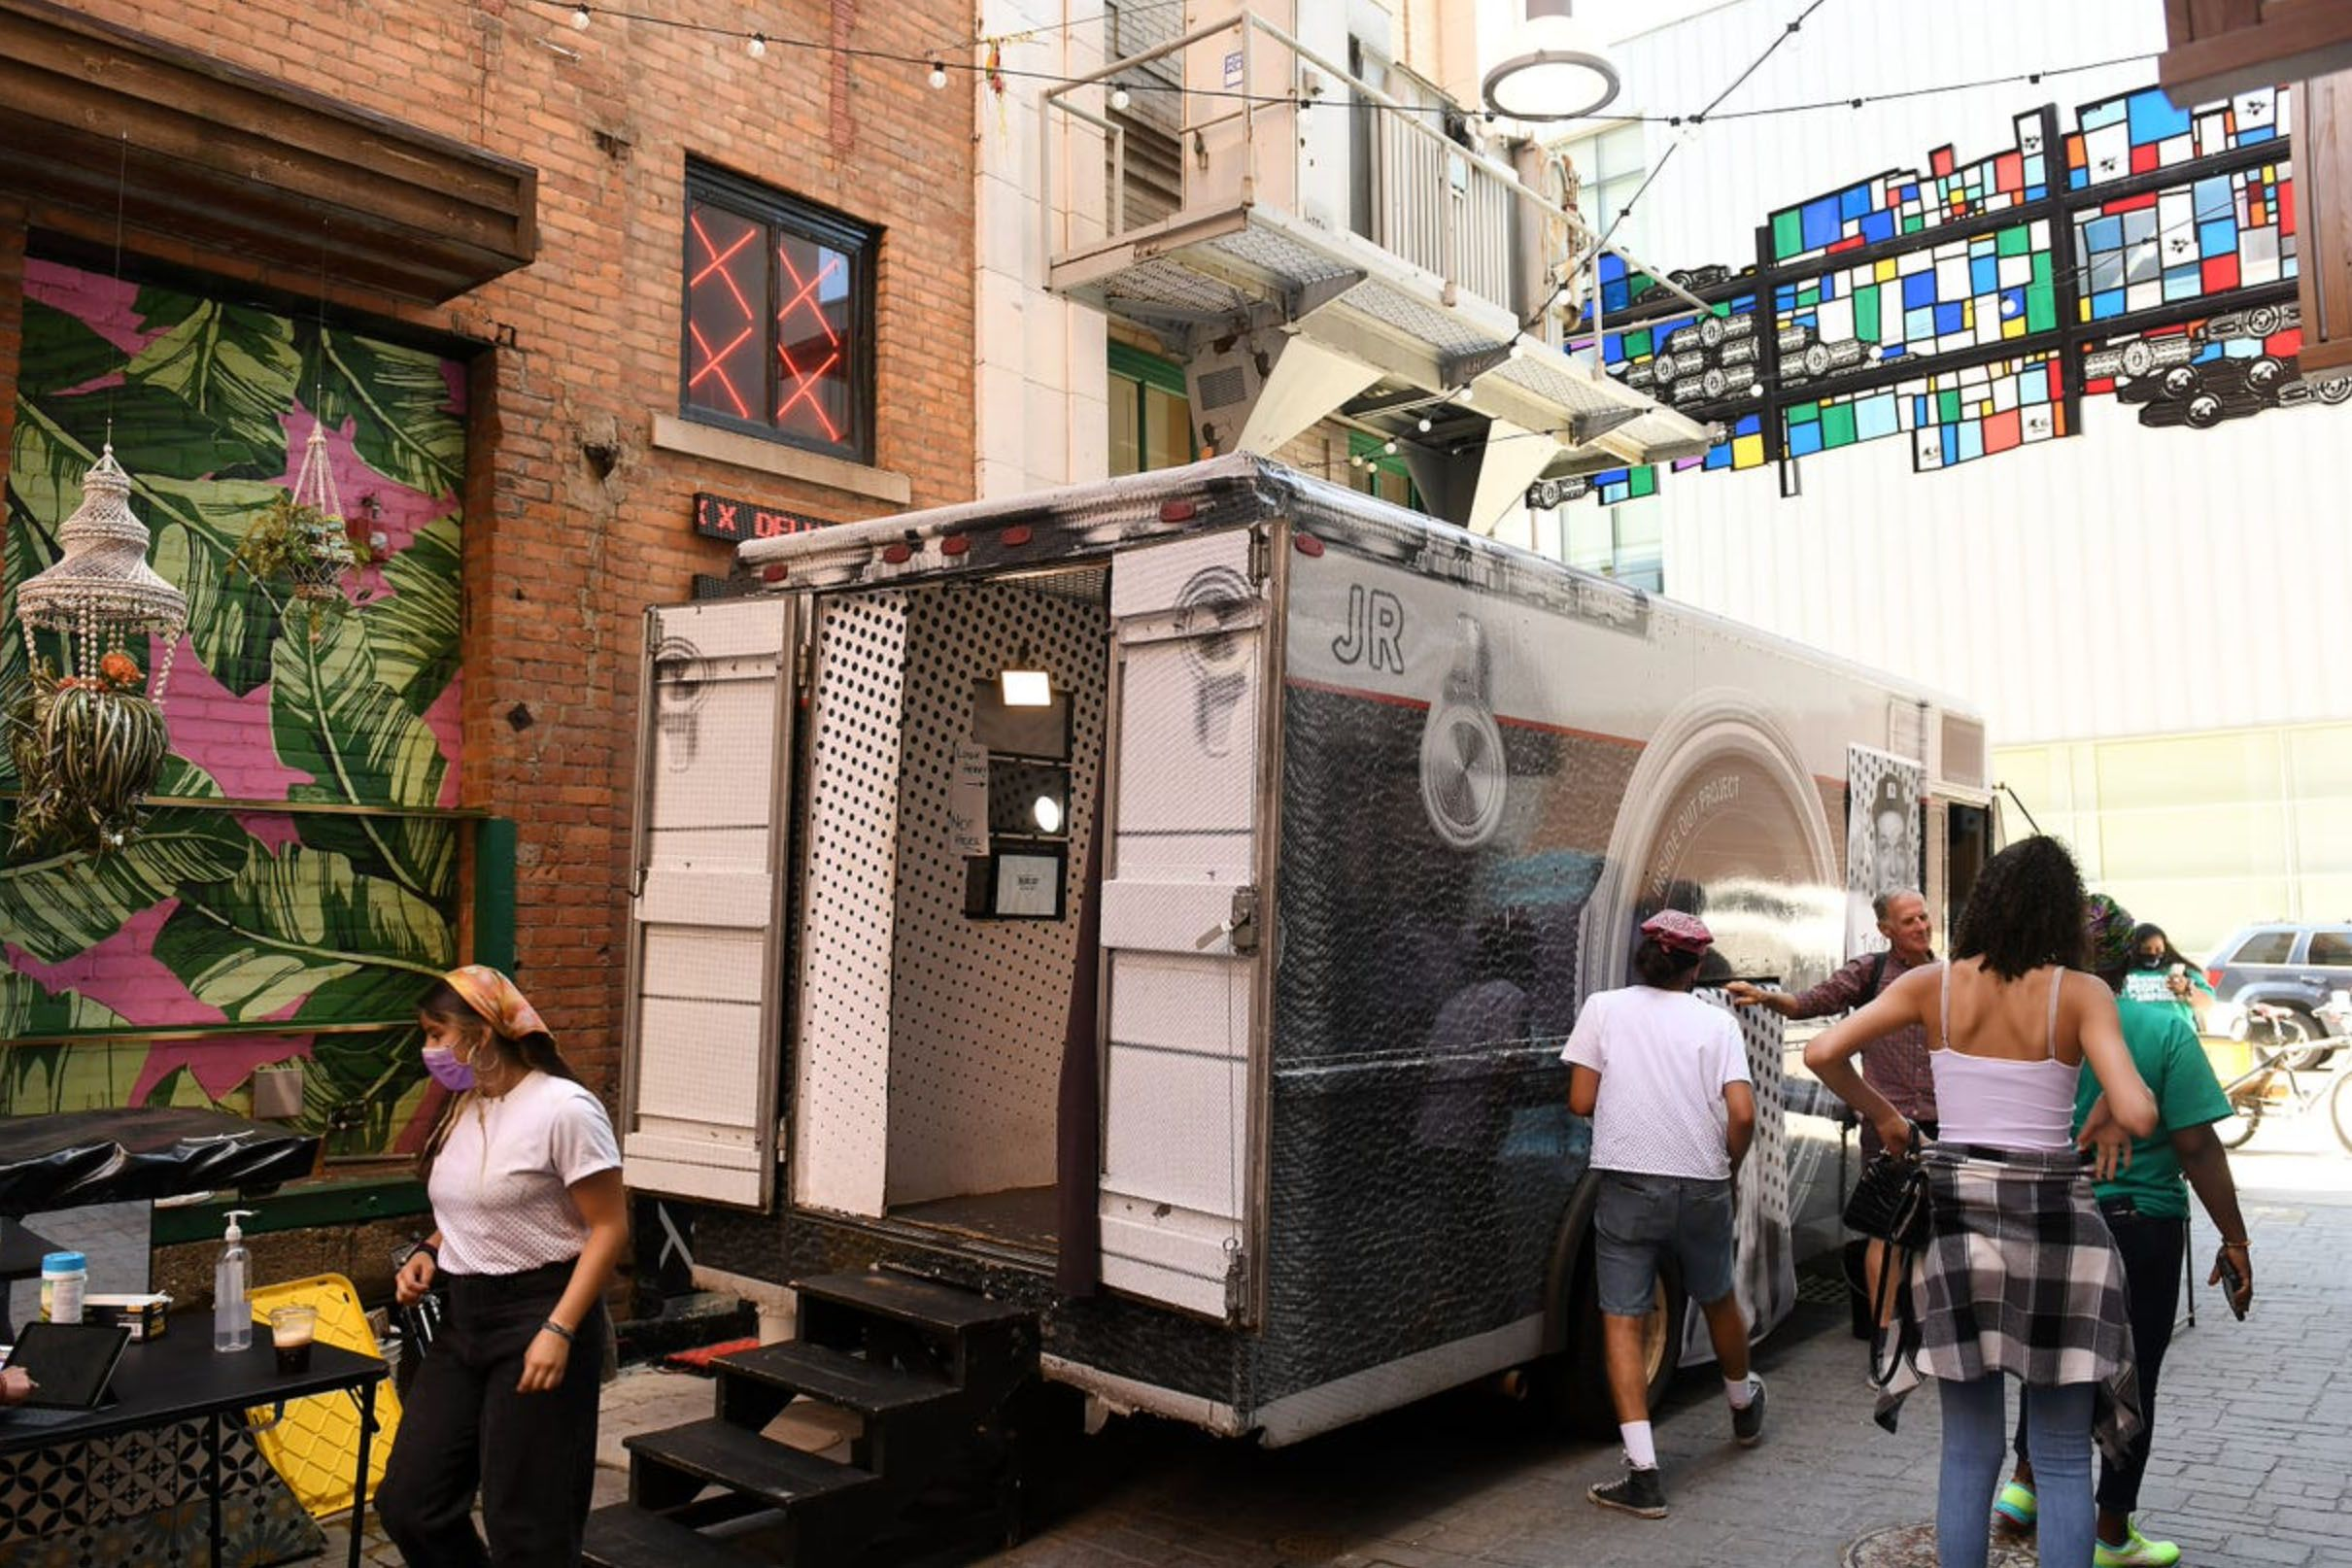 Public art installation tour stops in Detroit to raise awareness about immigration